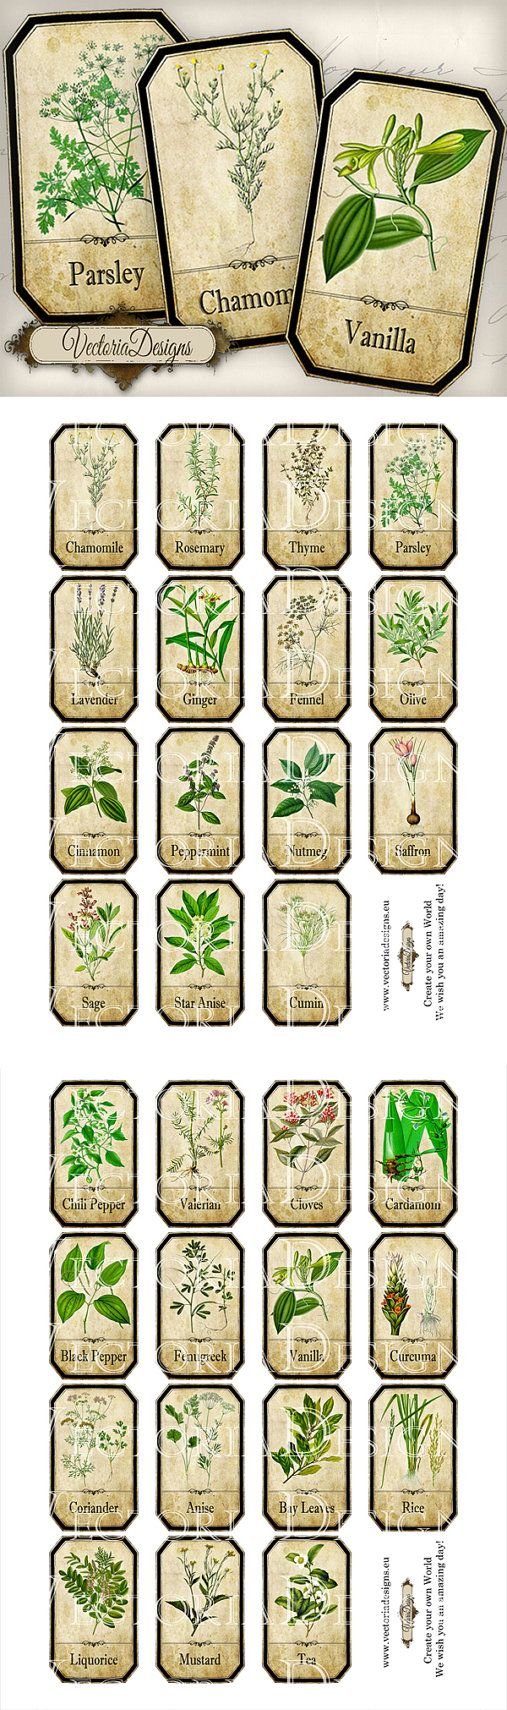 HERB JAR LABELS , HAVE TO REMEMBER TO USE THESE FOR MY HERBS... - / Spice Labels Jar Labels Tags instant download by VectoriaDesigns, $3.95: